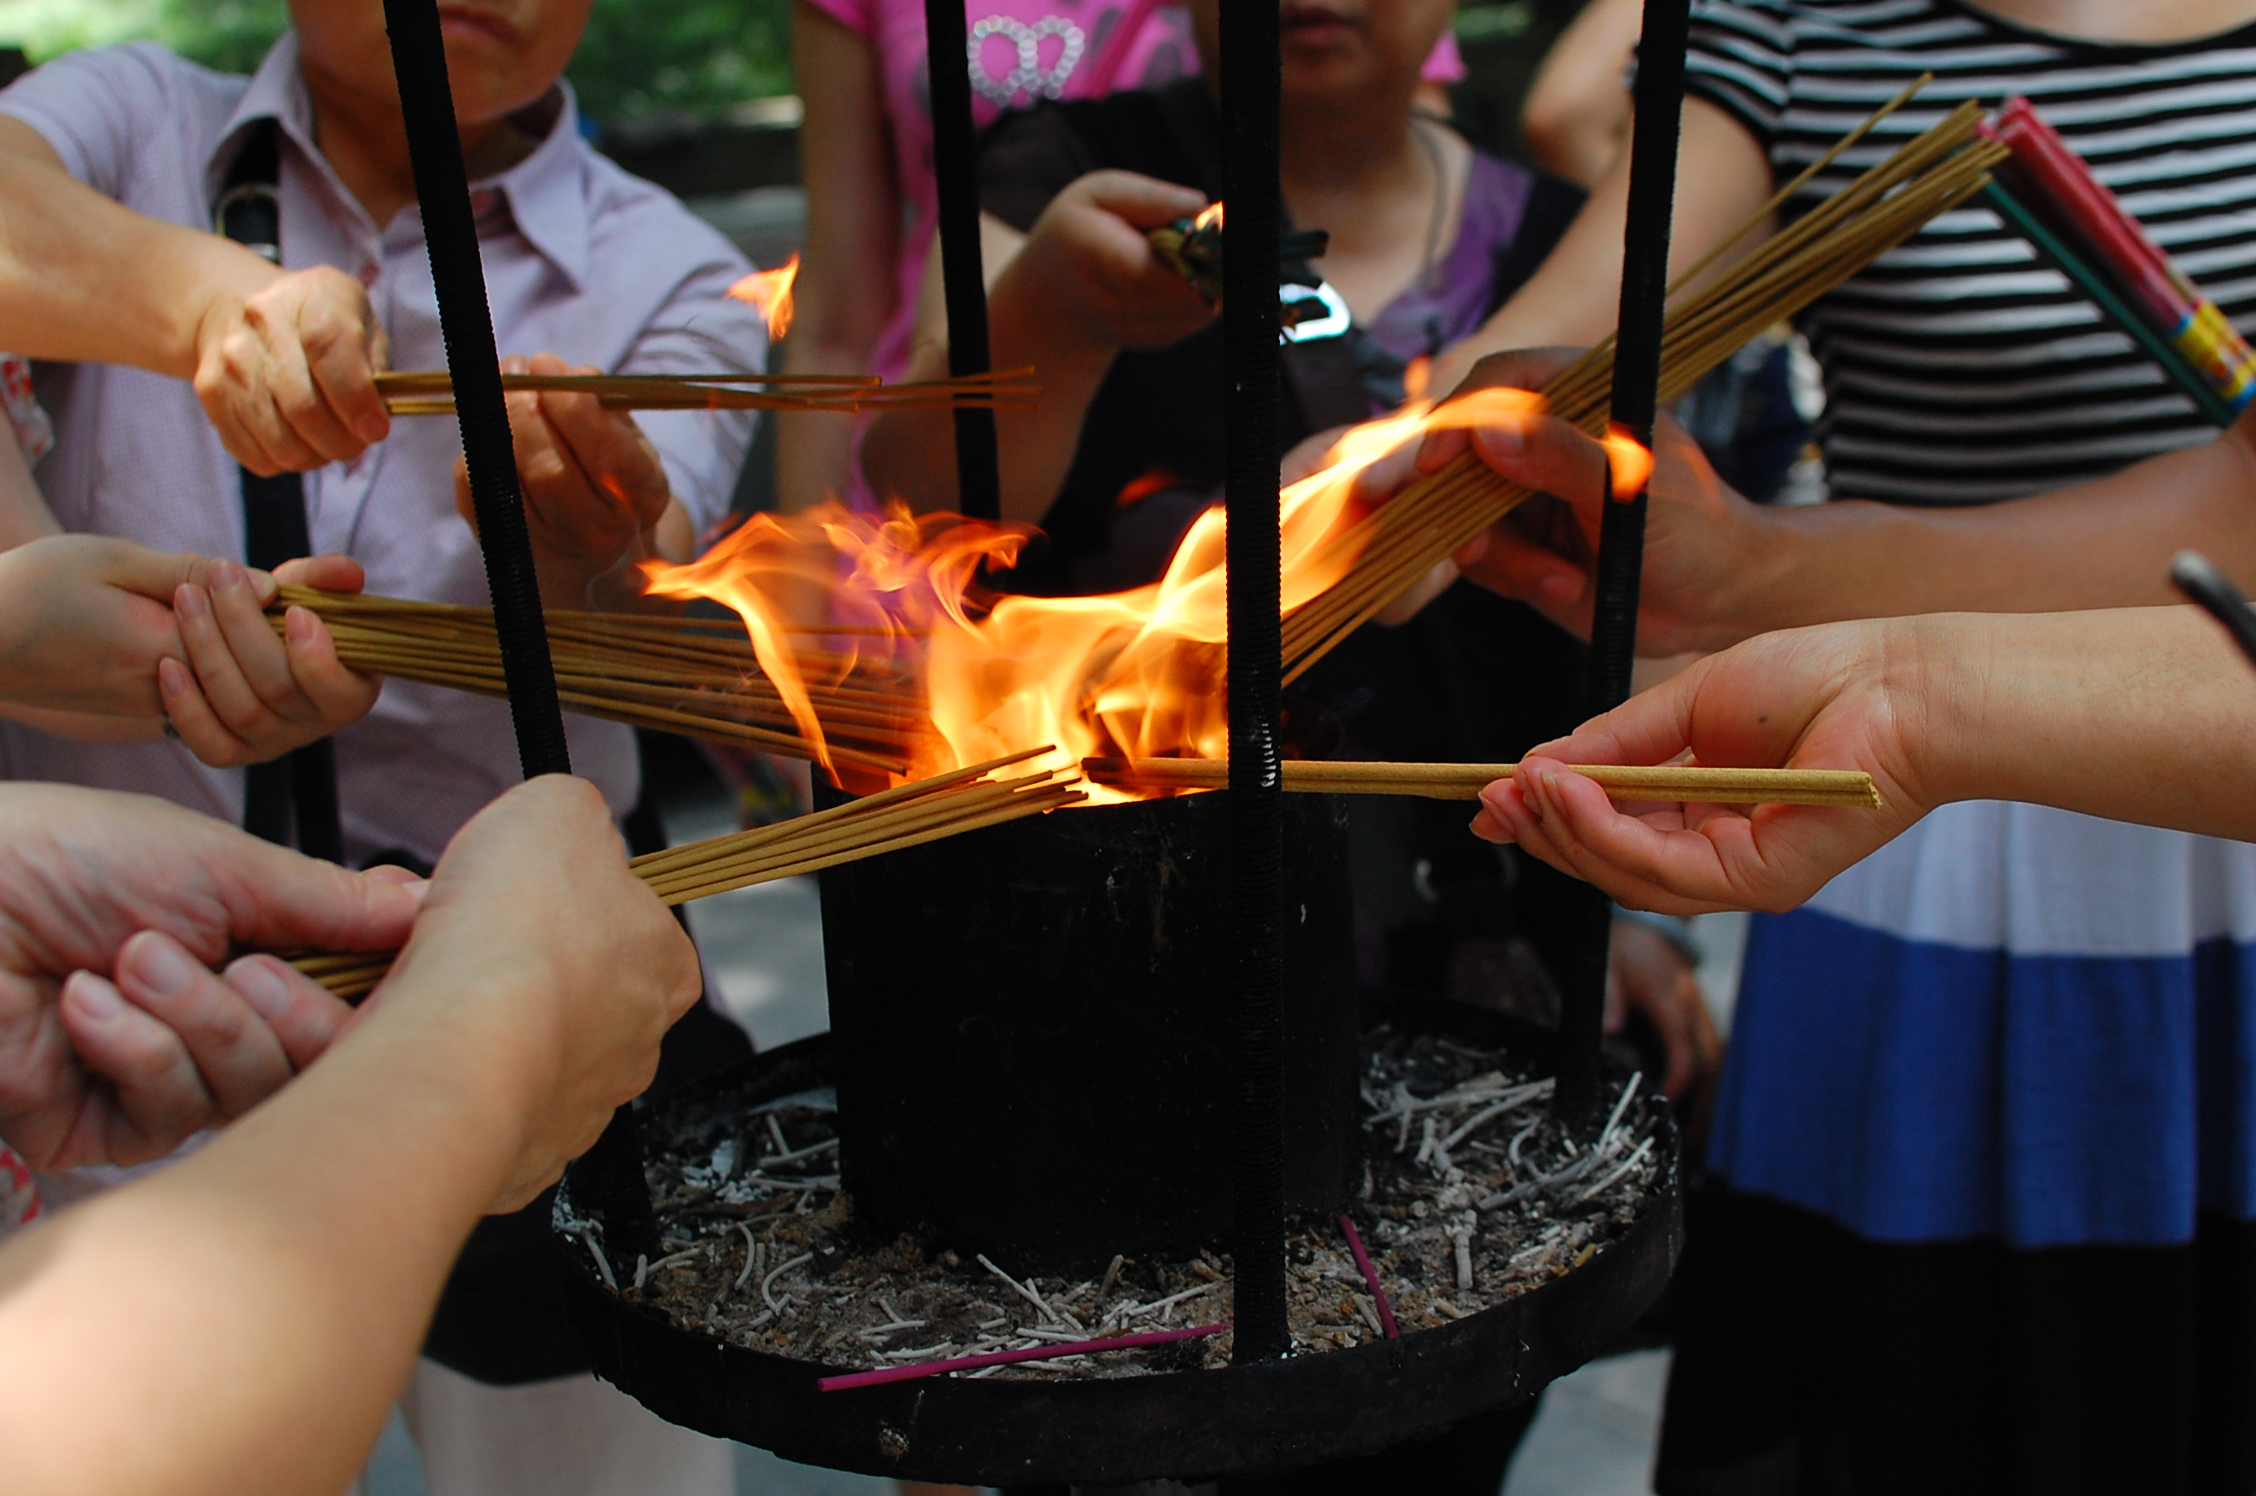 Lighting up incense at temple photo